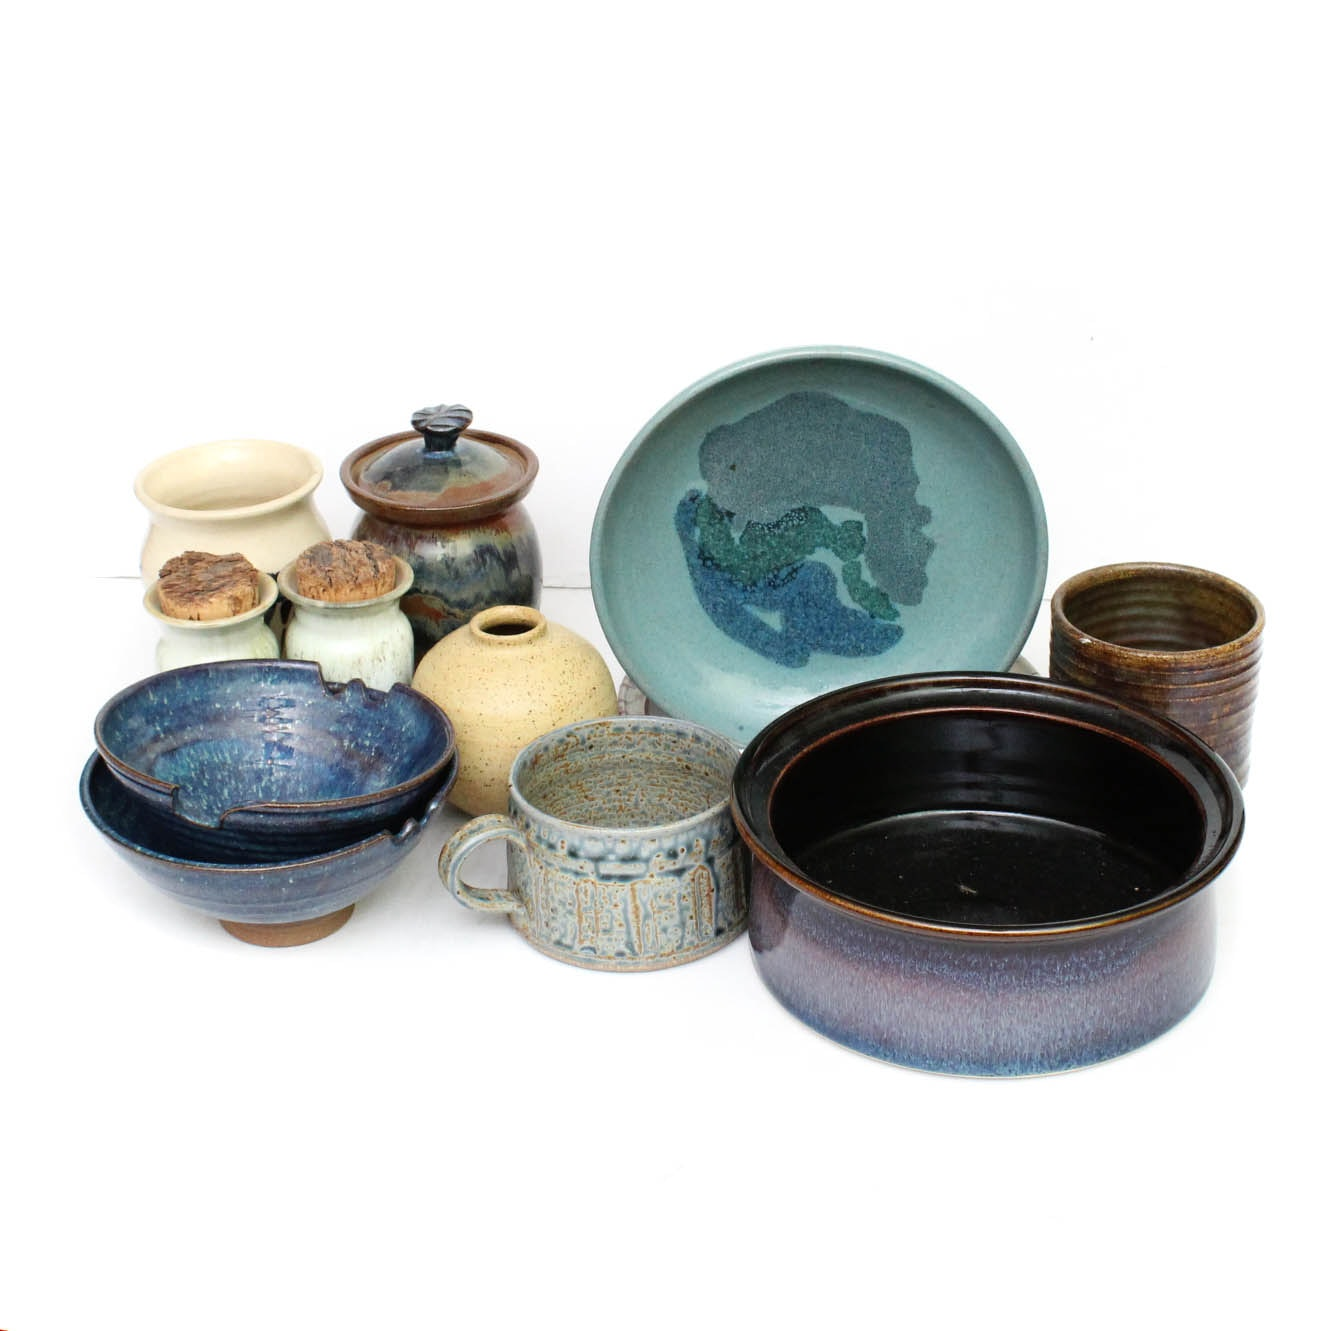 Signed Art Pottery Tableware and Decor